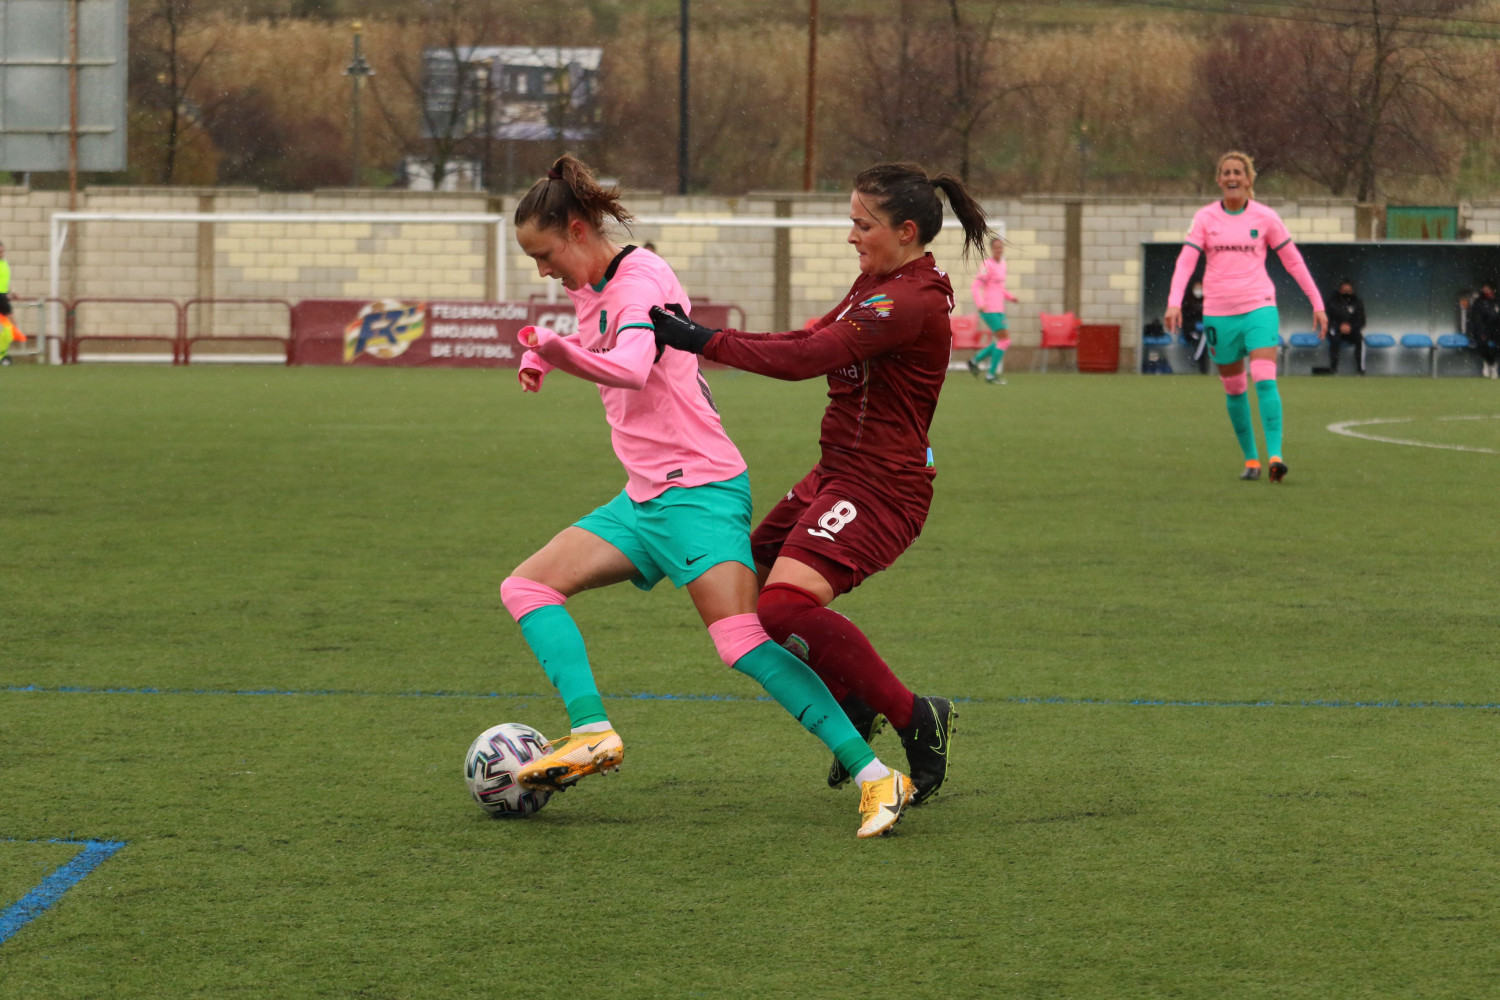 FC Barcelona Femení in action in their record-breaking win away to Logroña (image from FC Barcelona)